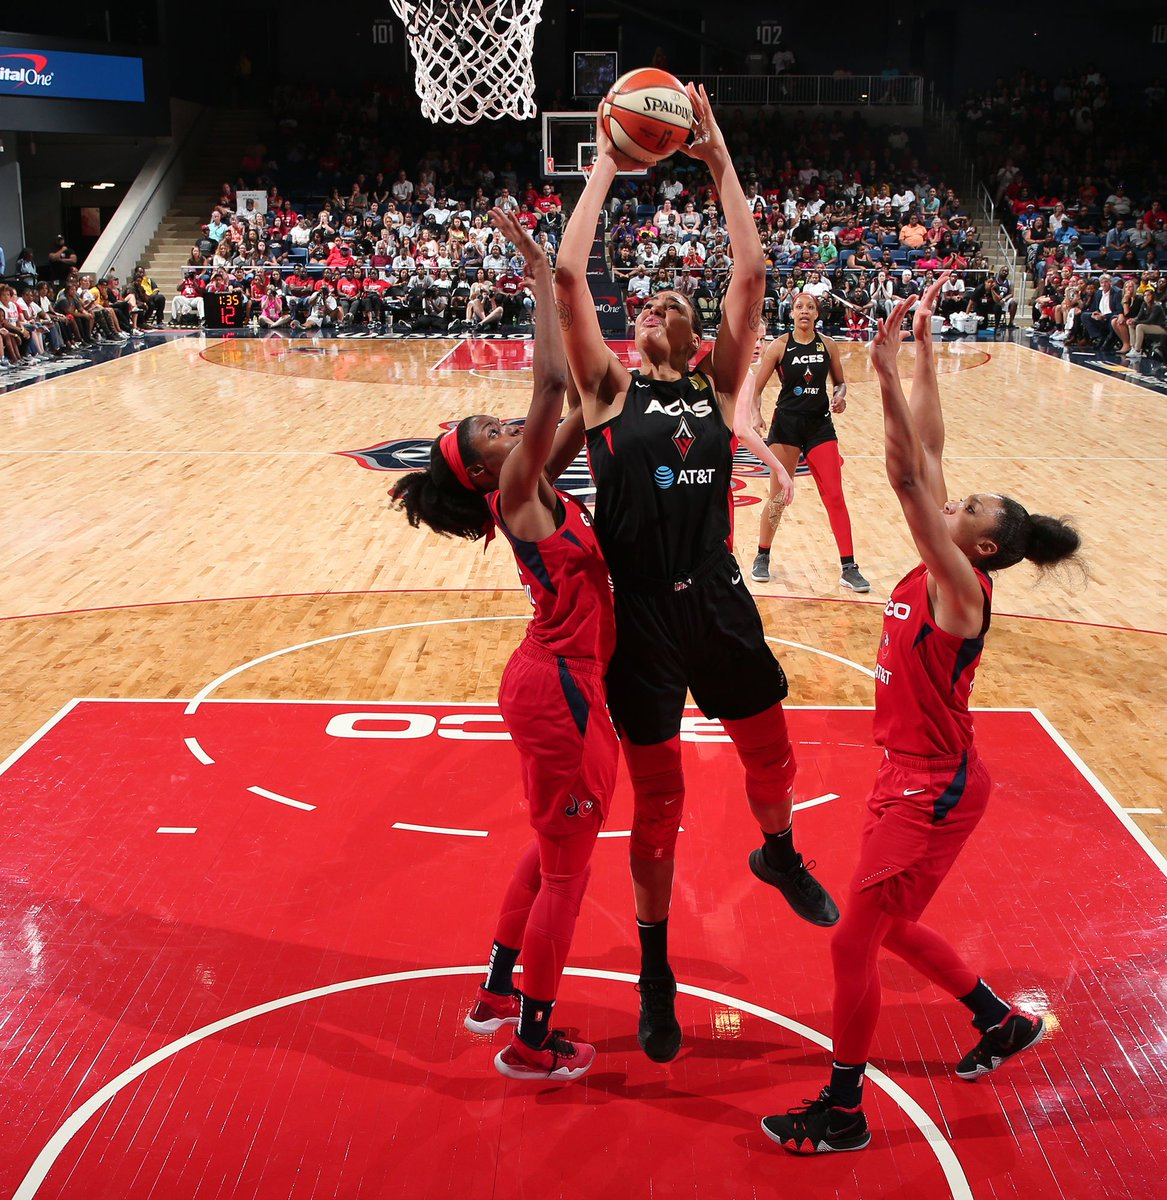 WNBA Midseason Report: Here's where the 12 teams of the league stand at the season's midway point  Check out which teams are:  😤 contenders   🤔 pretenders   😩 disappointments   🤗 deserving more love  #WNBA https://www.swishappeal.com/wnba/2019/7/19/20699329/wnba-midseason-report-contenders-ranking-las-vegas-aces-washington-mystics-los-angeles-sparks?utm_campaign=swishappeal&utm_content=chorus&utm_medium=social&utm_source=twitter …